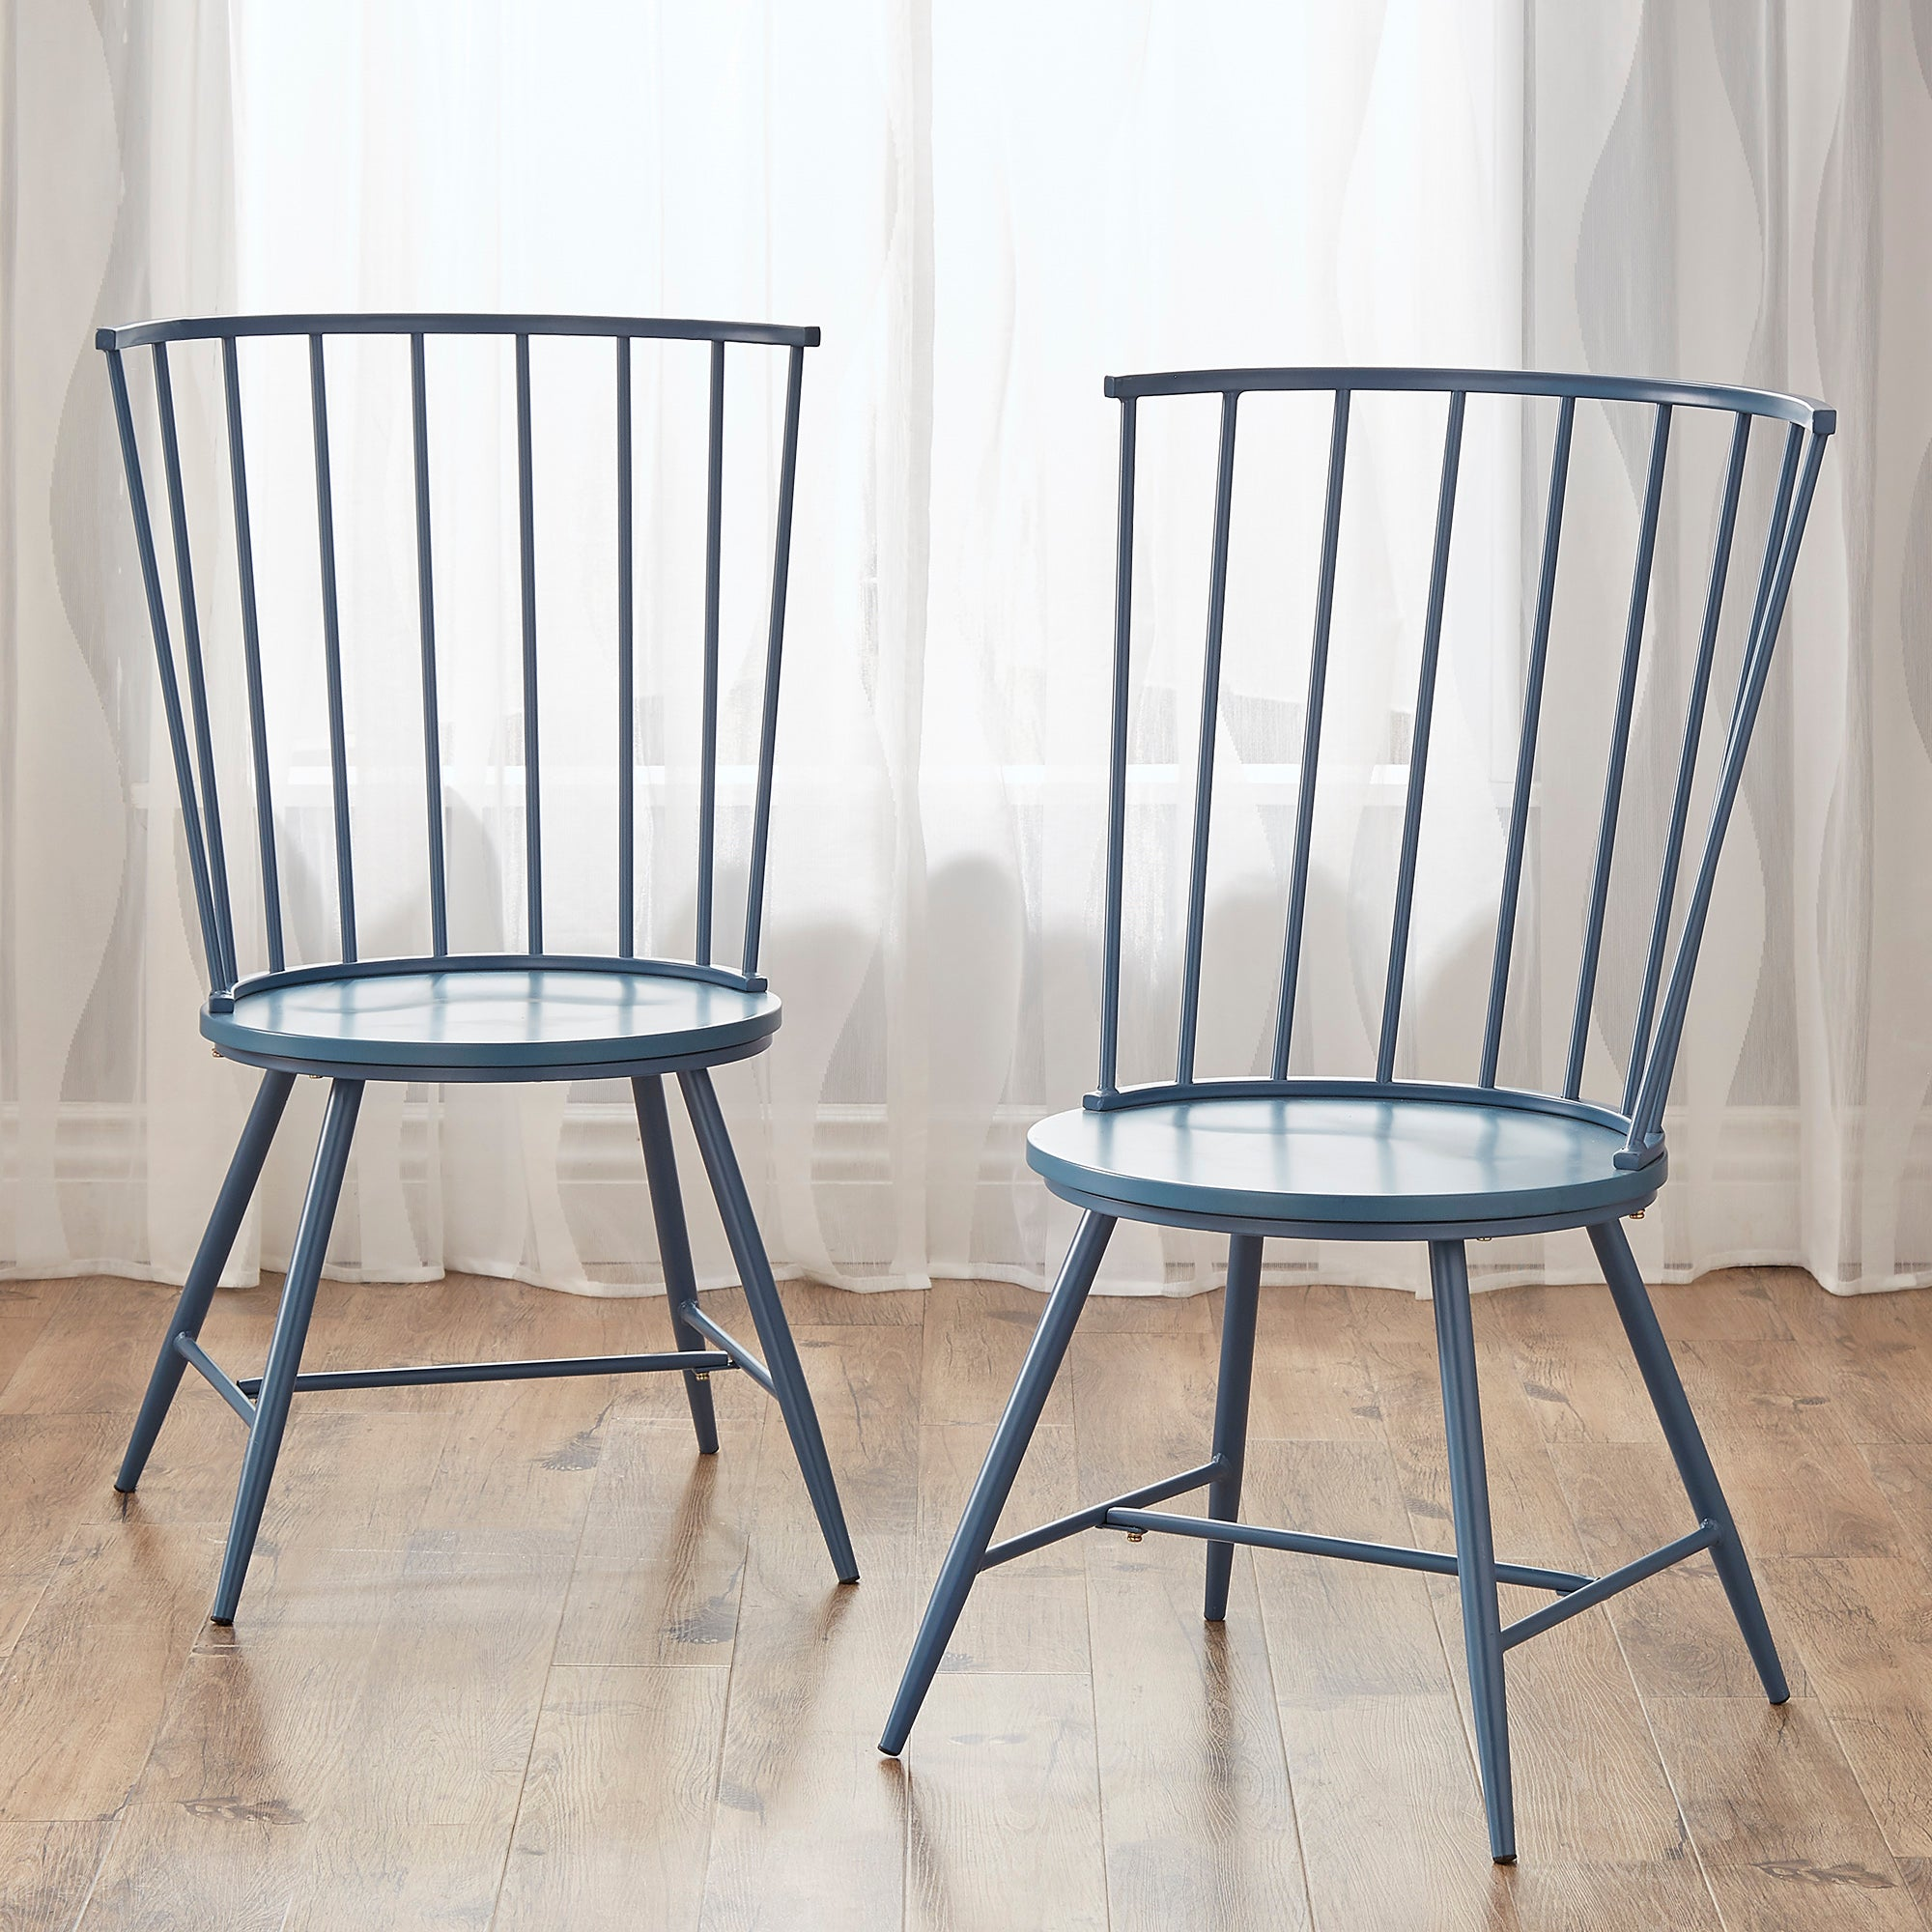 High Back Windsor Classic Dining Chairs (Set of 2) - Blue Steel